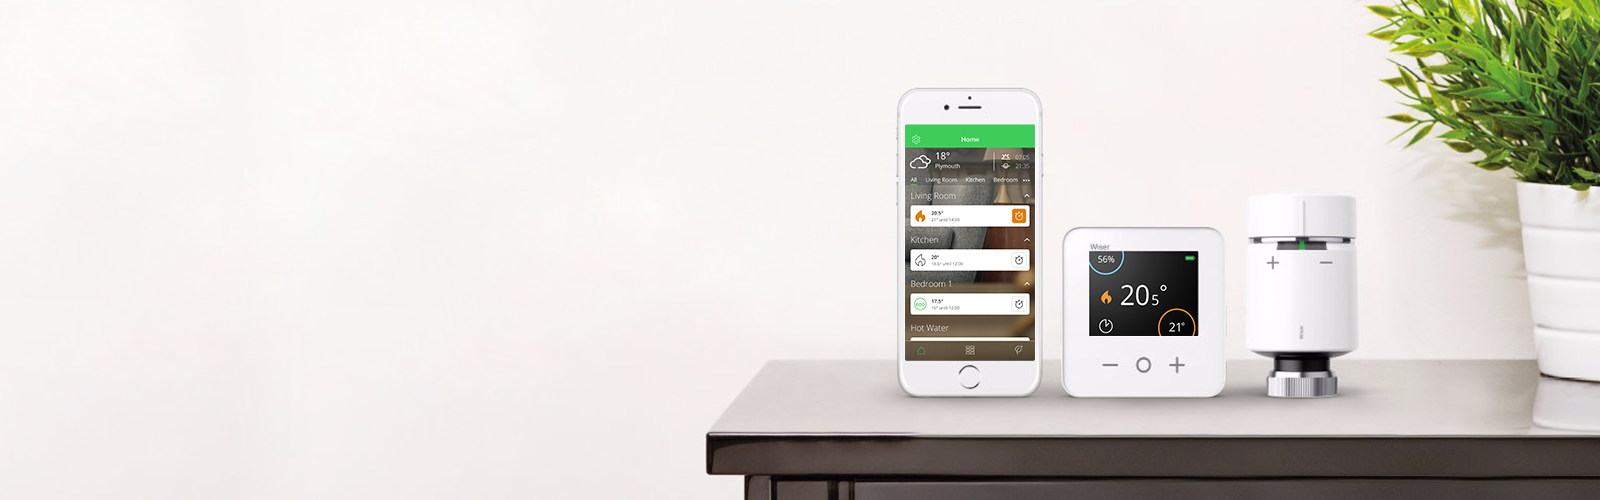 control your smart home with the wiser app